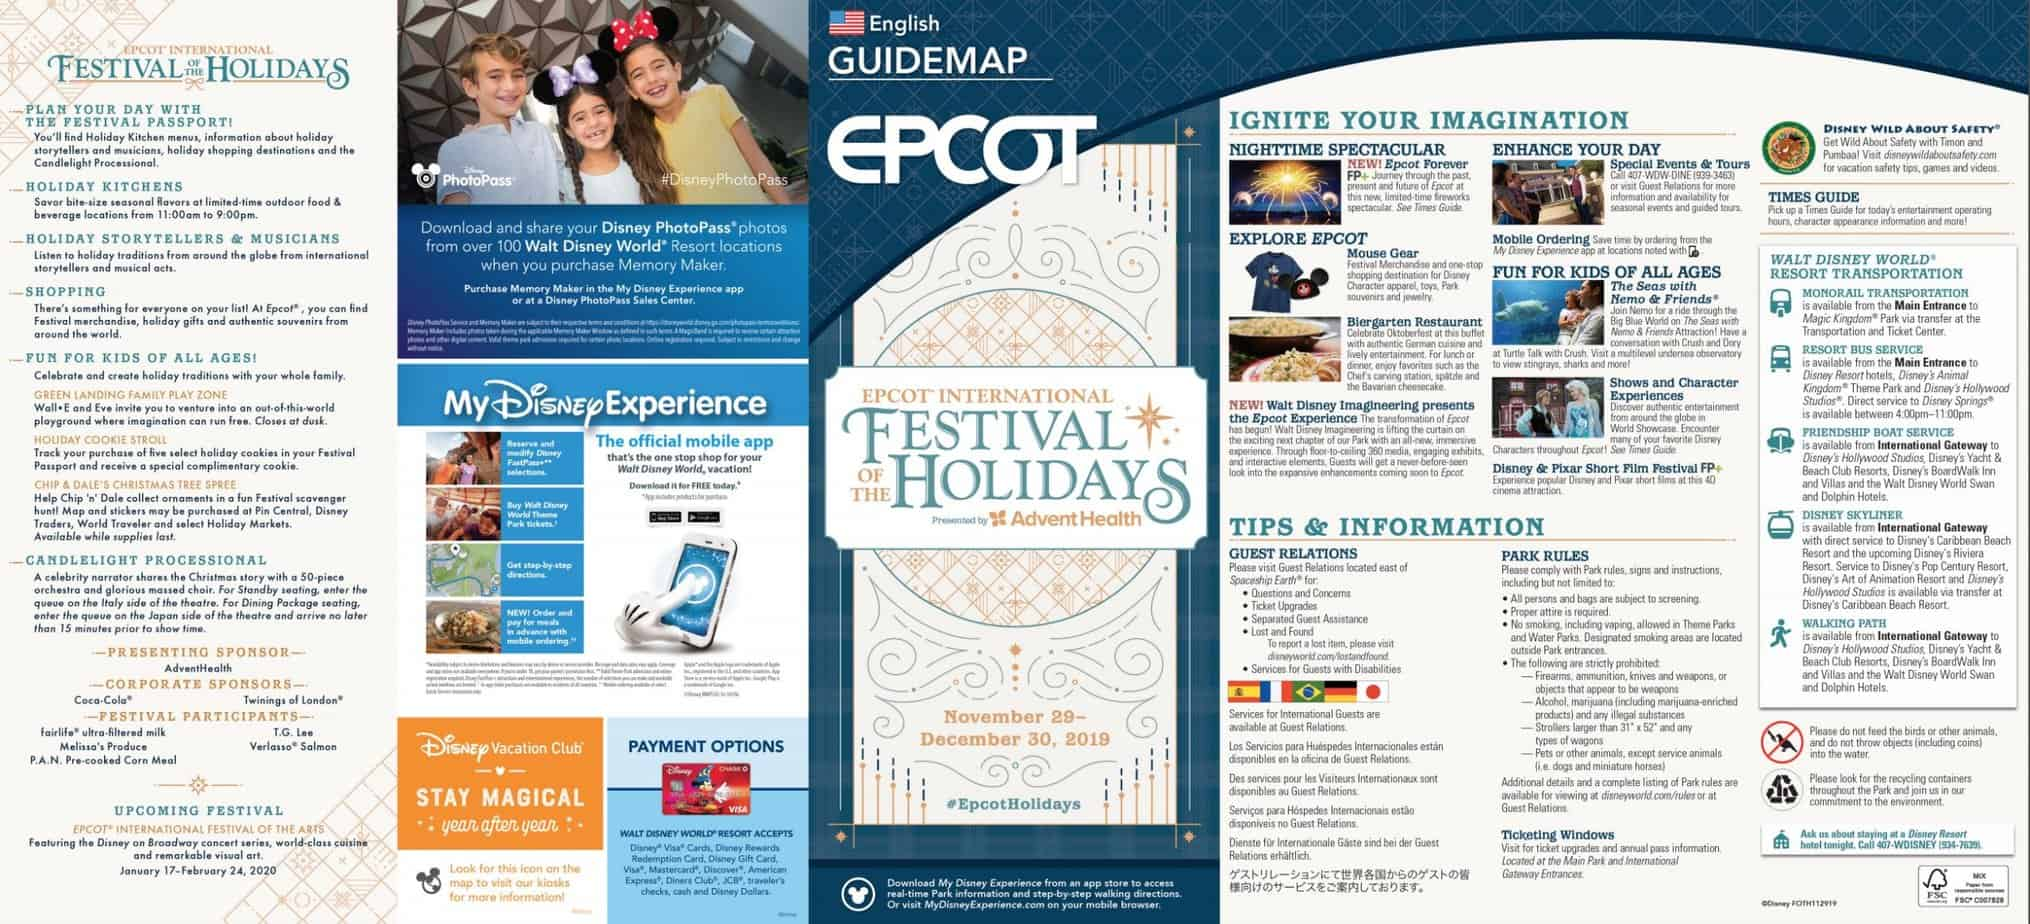 Guide to Epcot Festival of the Holidays 4